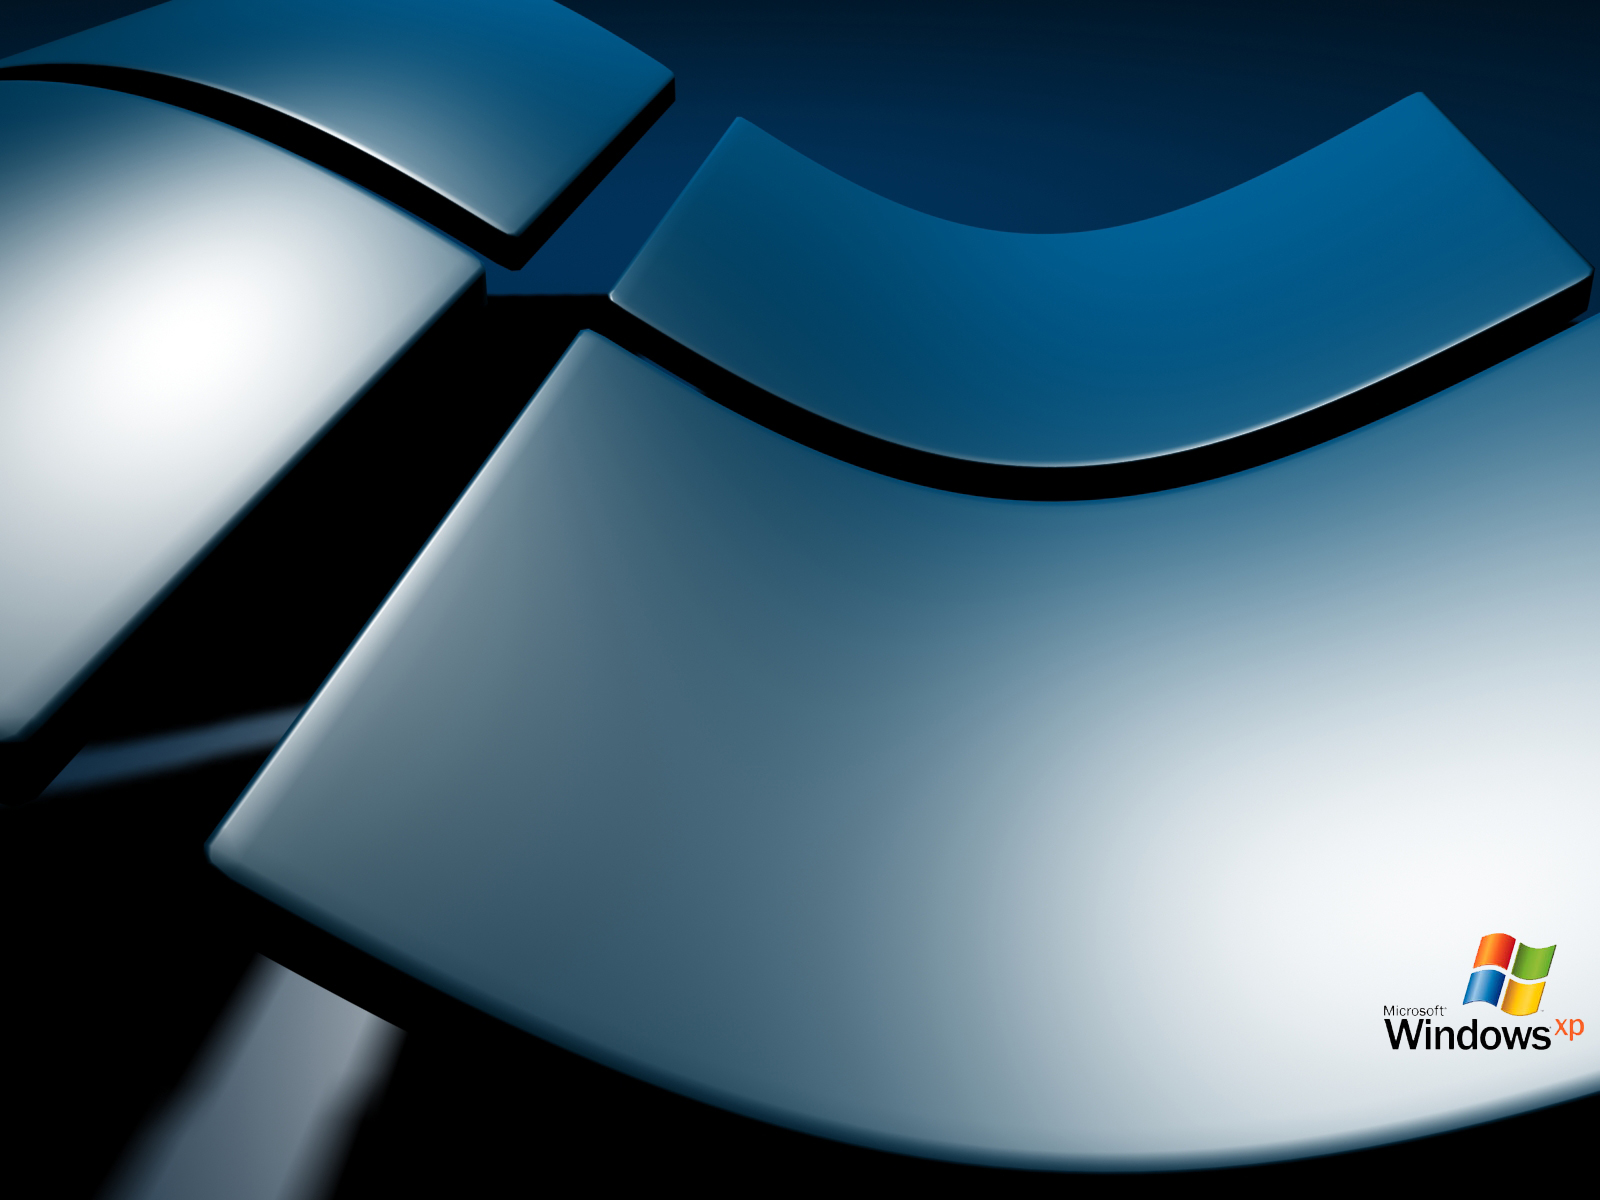 Download 45 HD Windows XP Wallpapers for 1600x1200